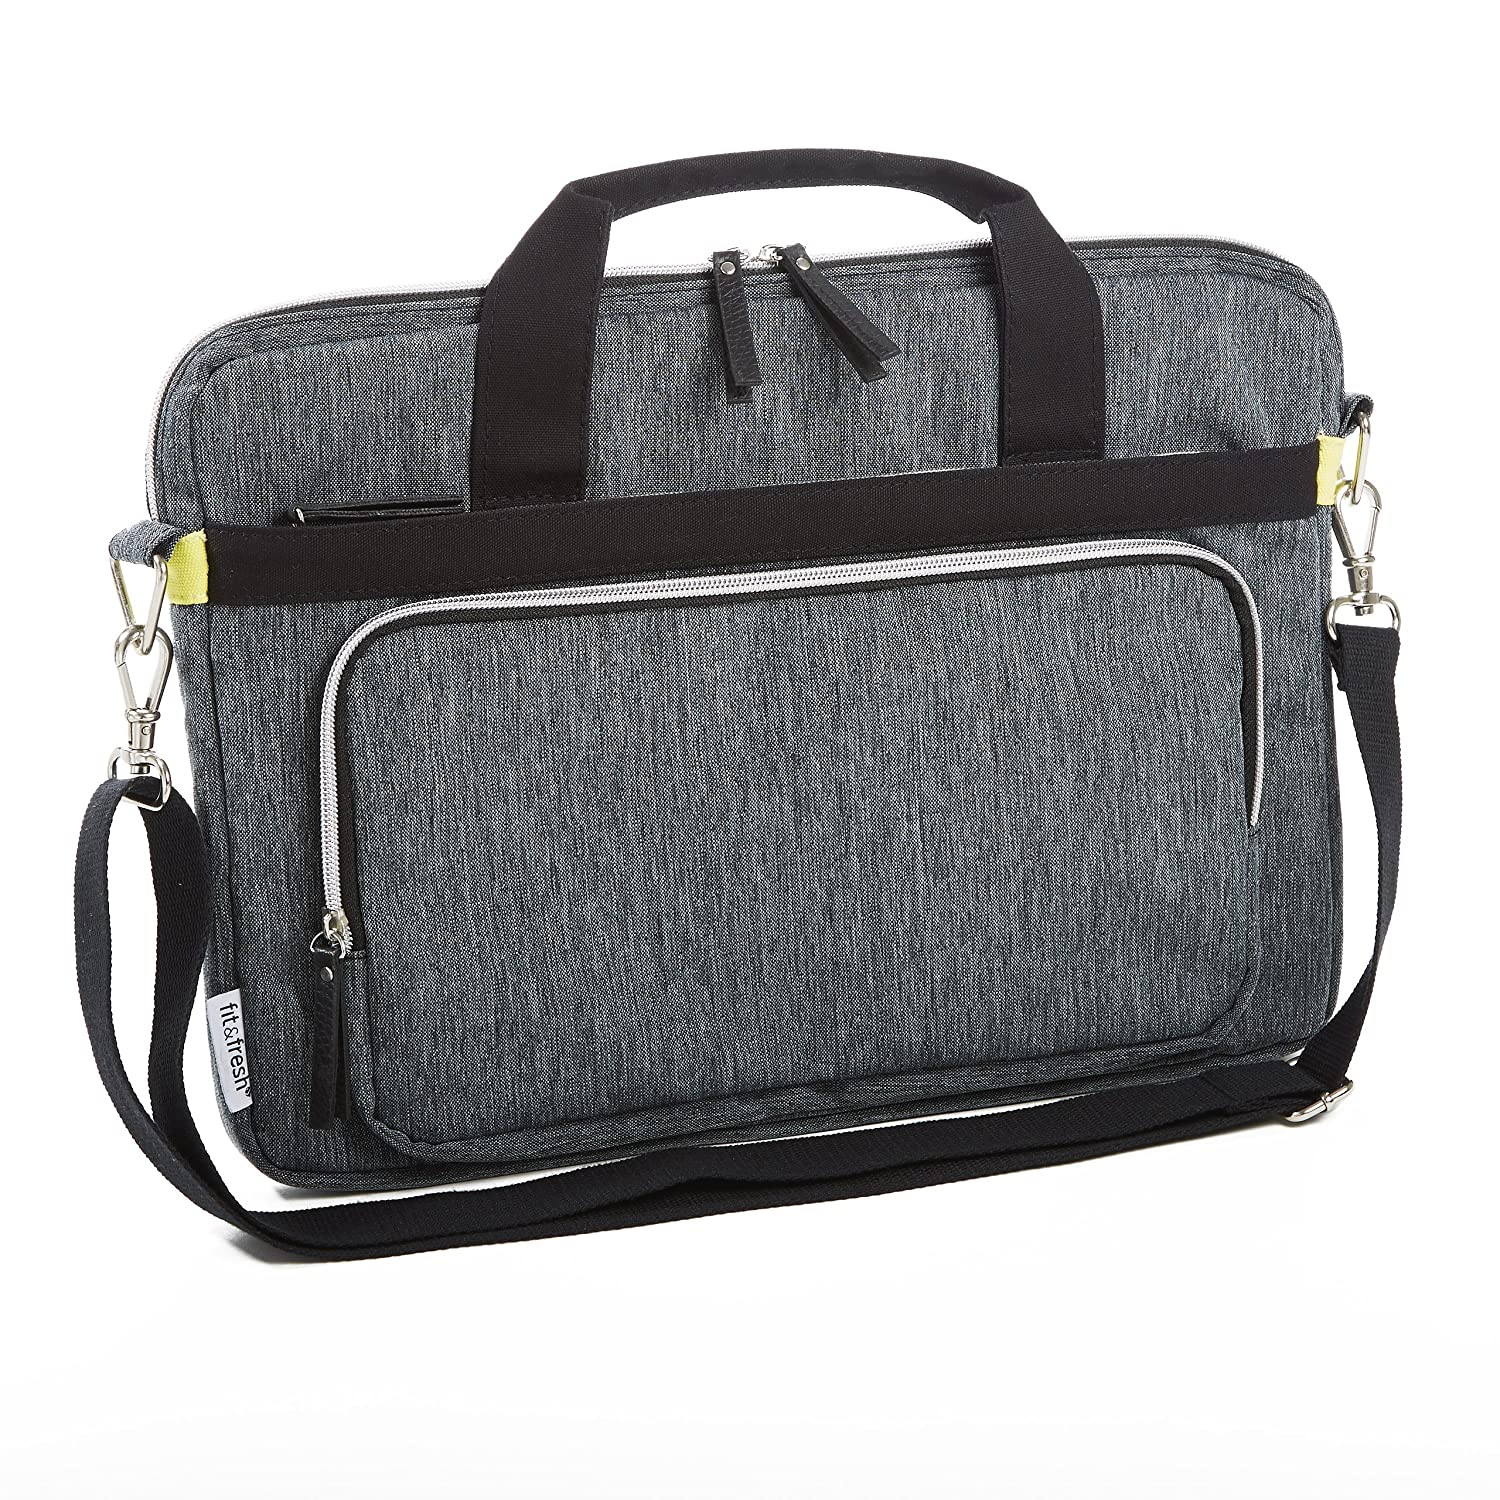 """lovely Fit & Fresh Messenger-Style Protective Laptop Case with Shoulder Strap, Handles & Pocket, fits Apple/Microsoft/Acer/Samsung/Google/Lenovo with up to 15.6"""" Displays, Space Dyed, Gray"""